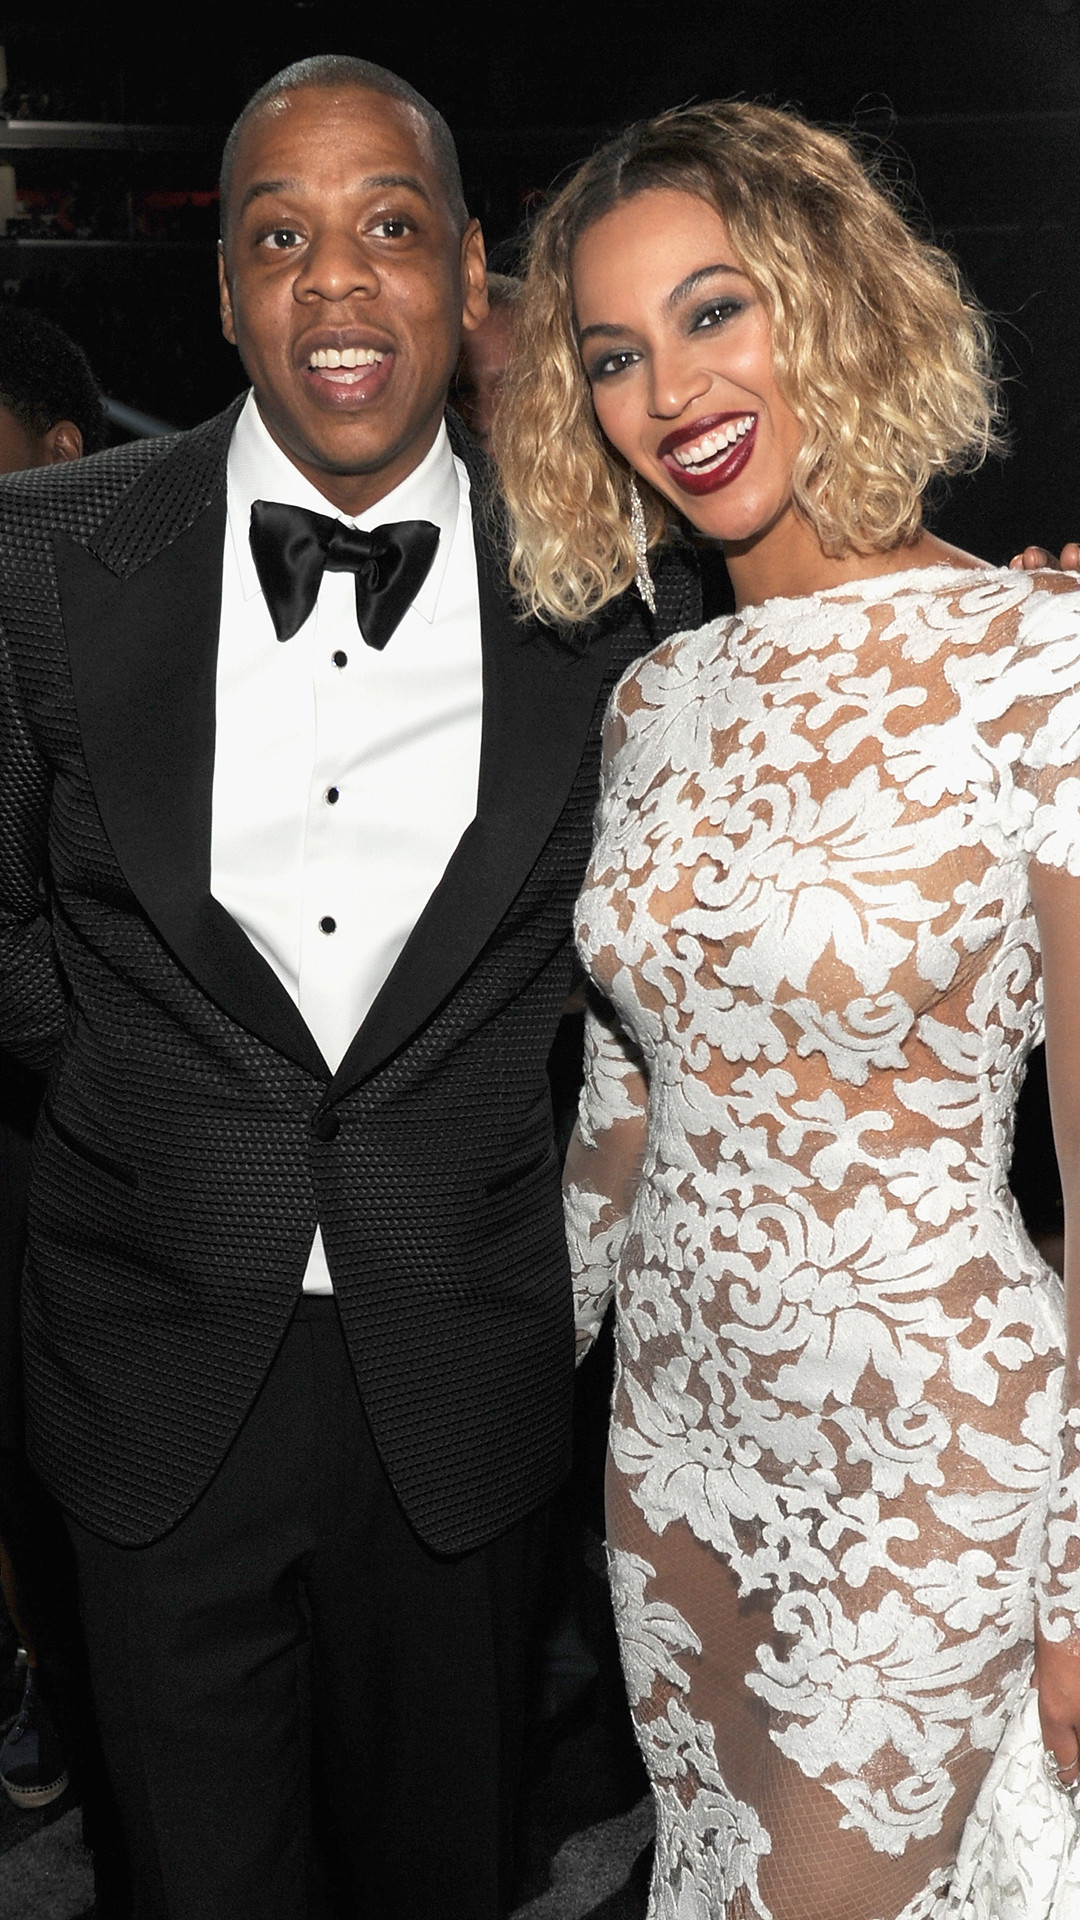 Jay Z: Beyoncé And Jay-Z Are Going On Tour Together